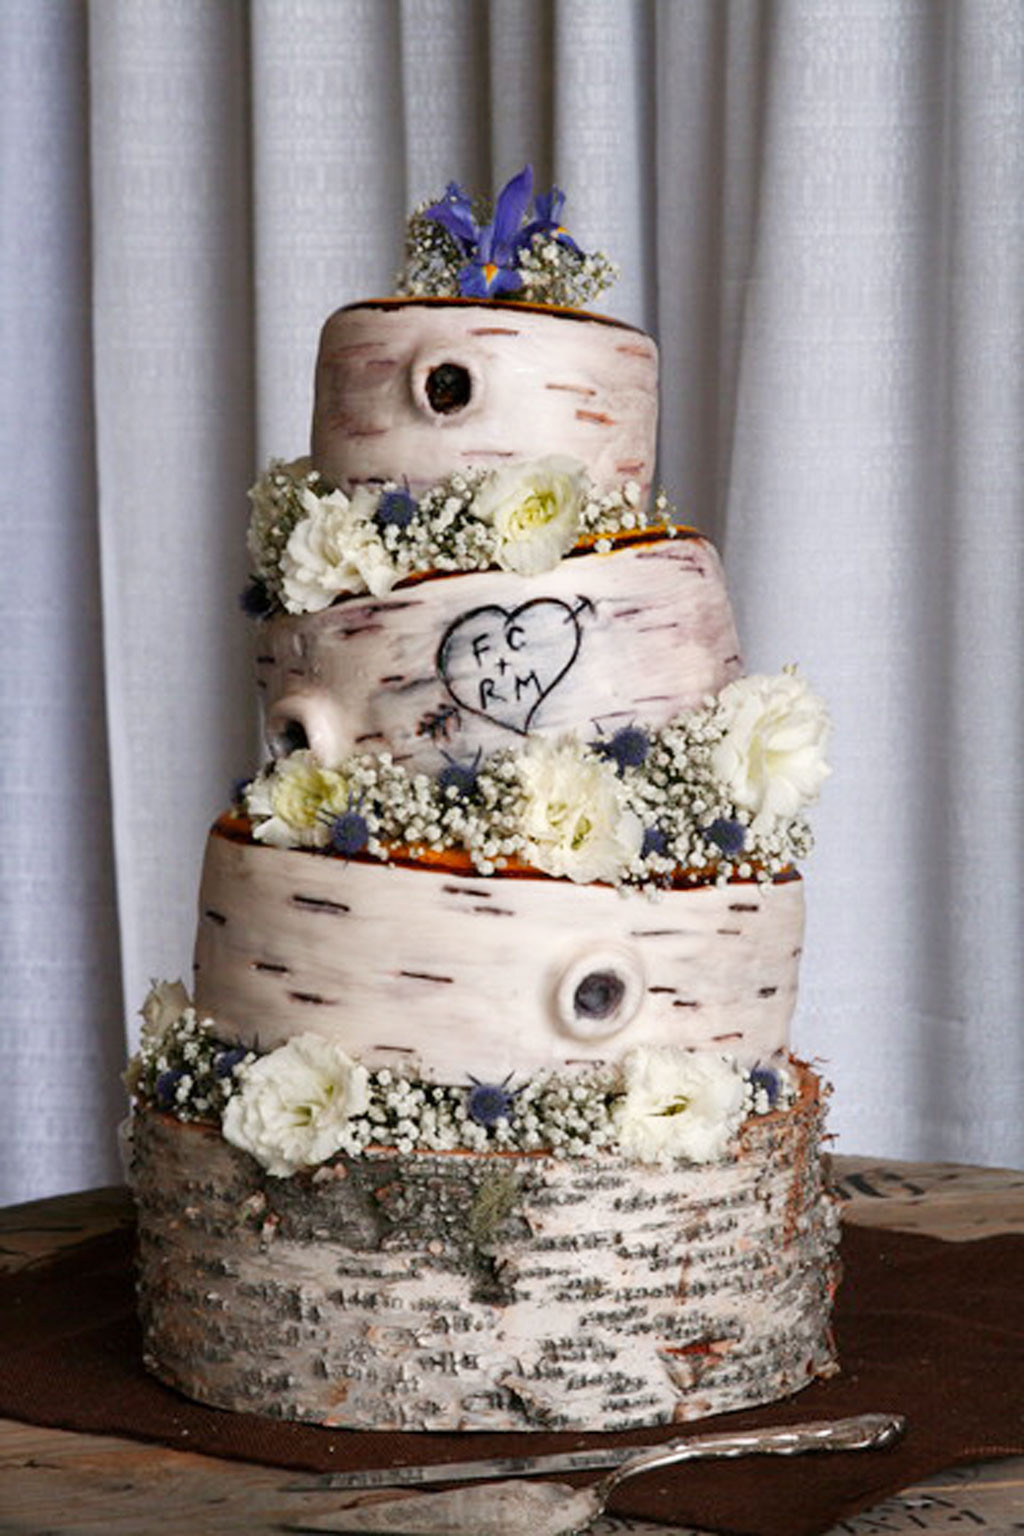 Wedding Cakes Anchorage the Best Wedding Cakes Anchorage Alaska Wedding Cake Cake Ideas